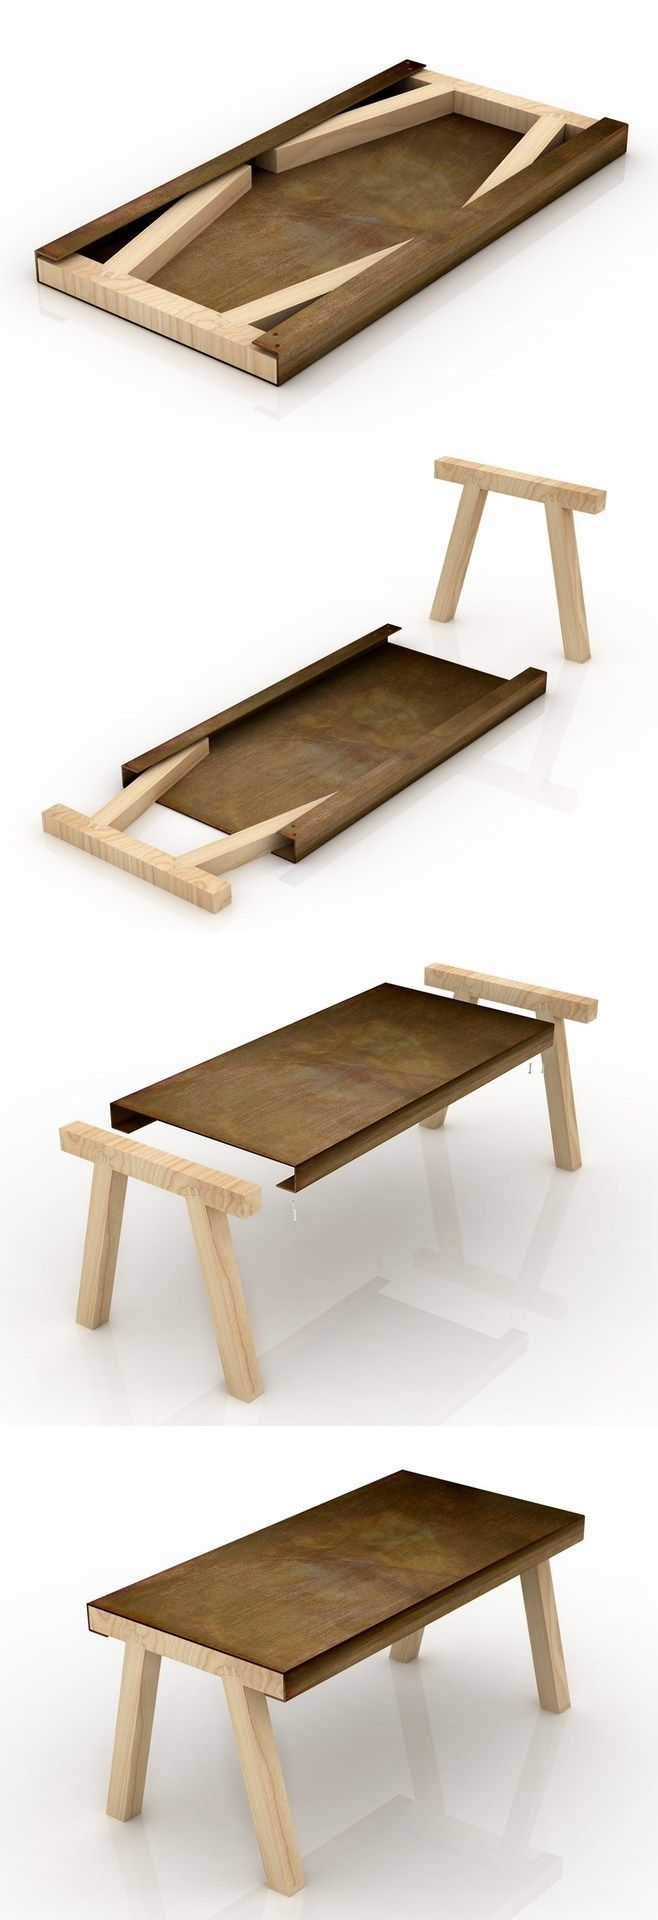 Il Tavolo Mastro / Studio Gumdesign Масштабировать Фото  This is such a cool idea. Can't manufacture a metal top but could it be adapted to wood top with metal chanel to slide legs into?  hmm something to muse